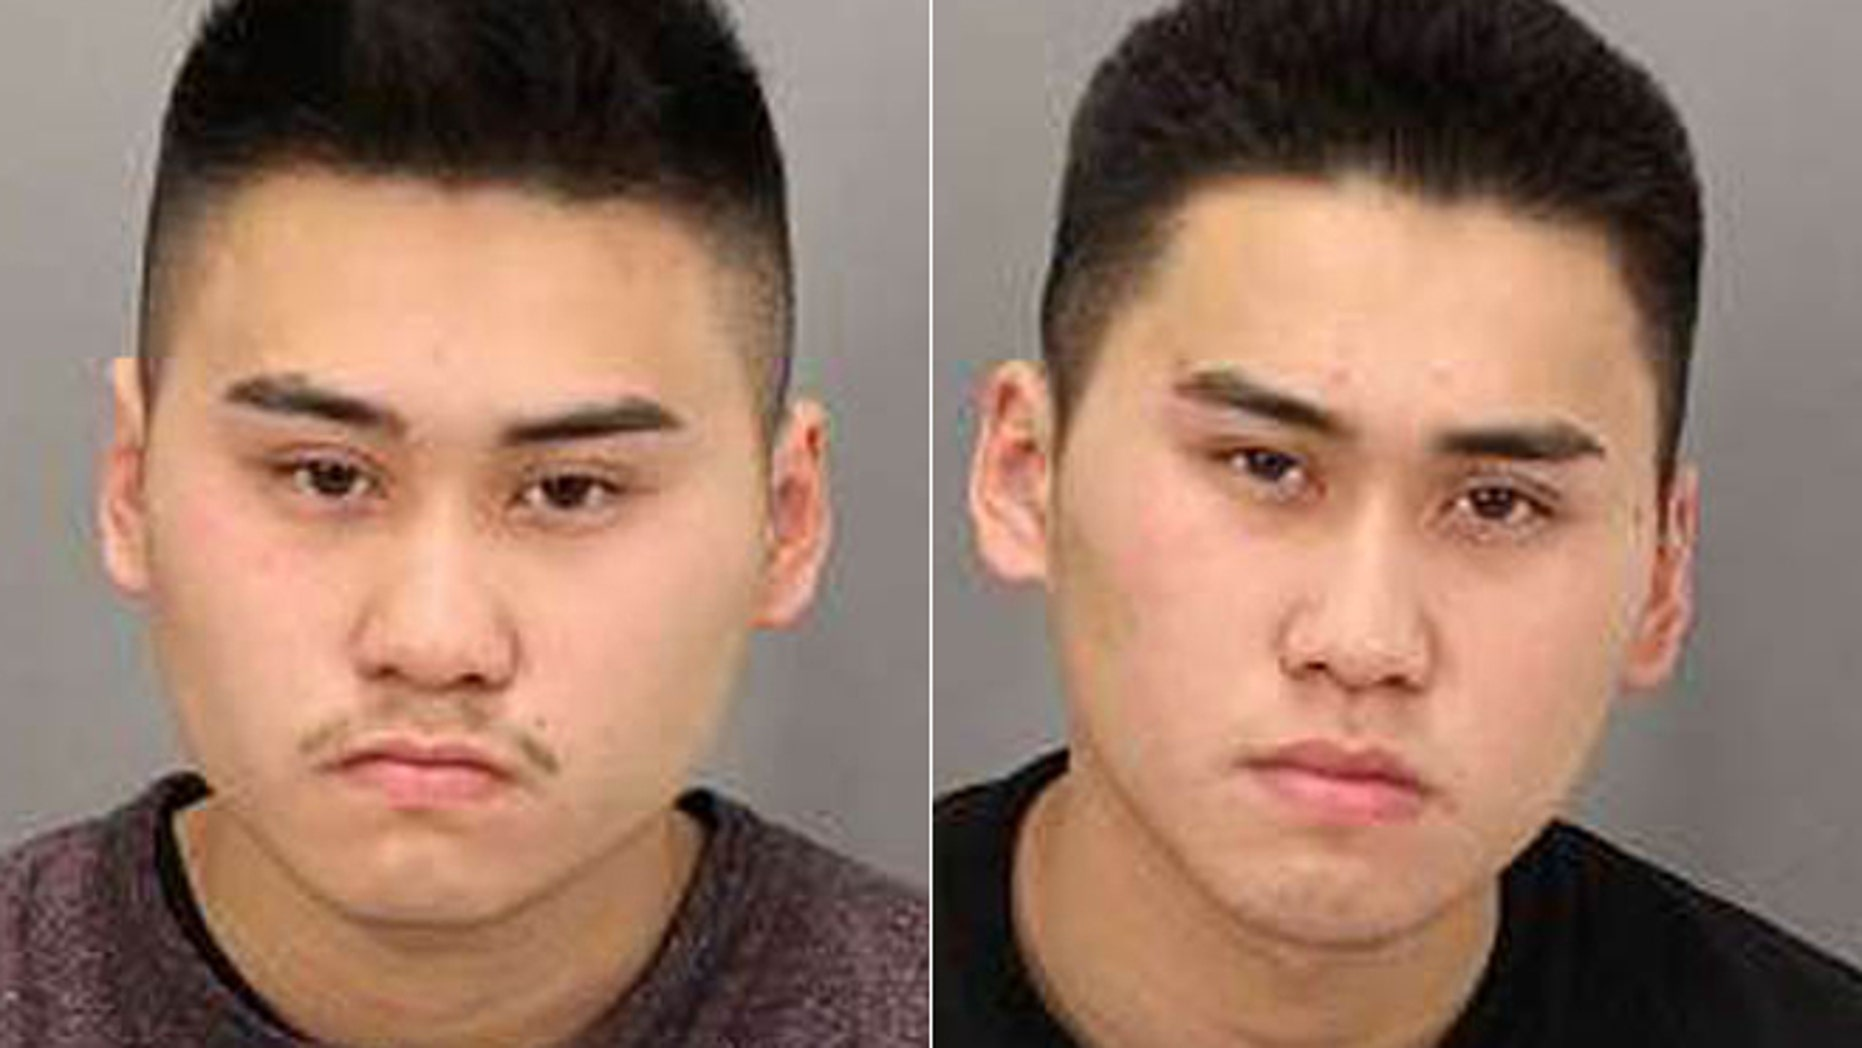 Anh Tong (left) was charged with murder and Duc Tong saw his murder charges dropped.